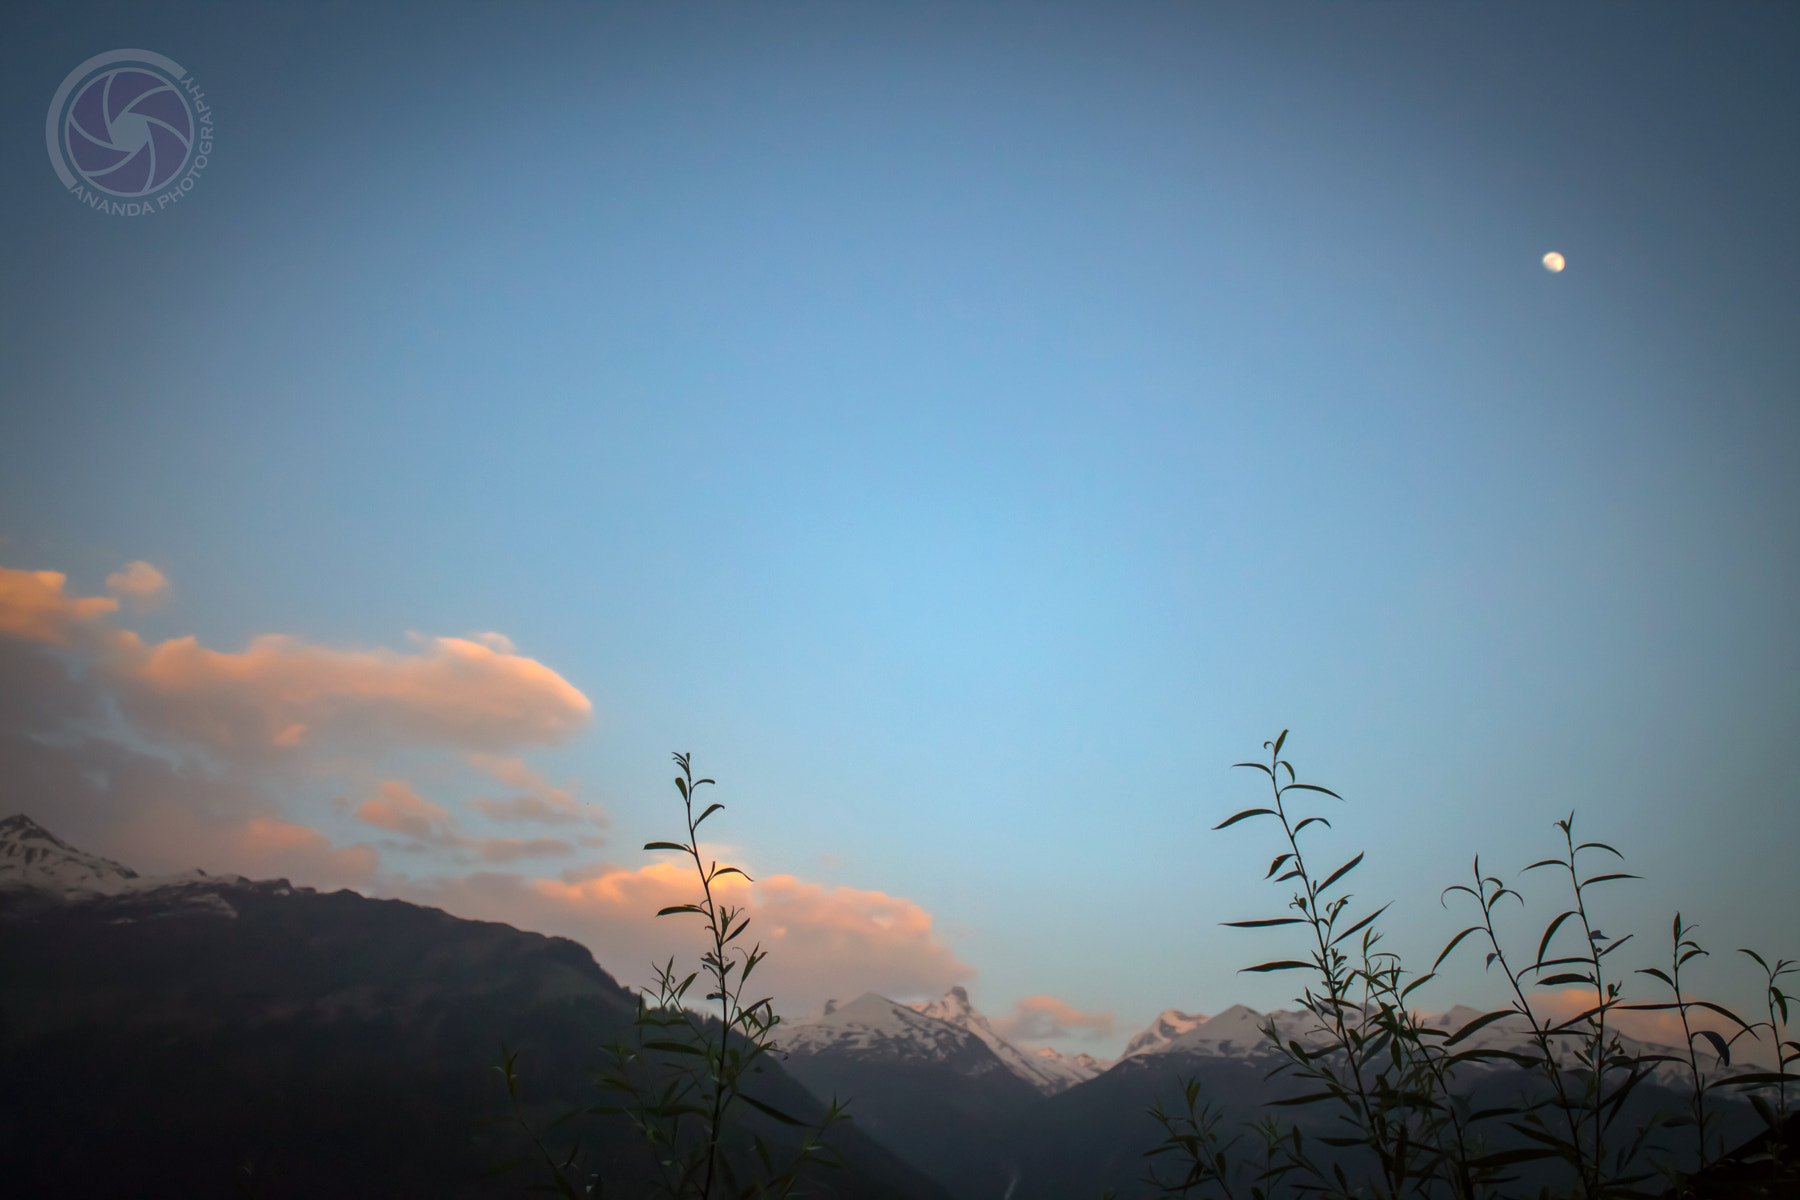 Photograph Sunset in Manali by Ananda Gupta on 500px